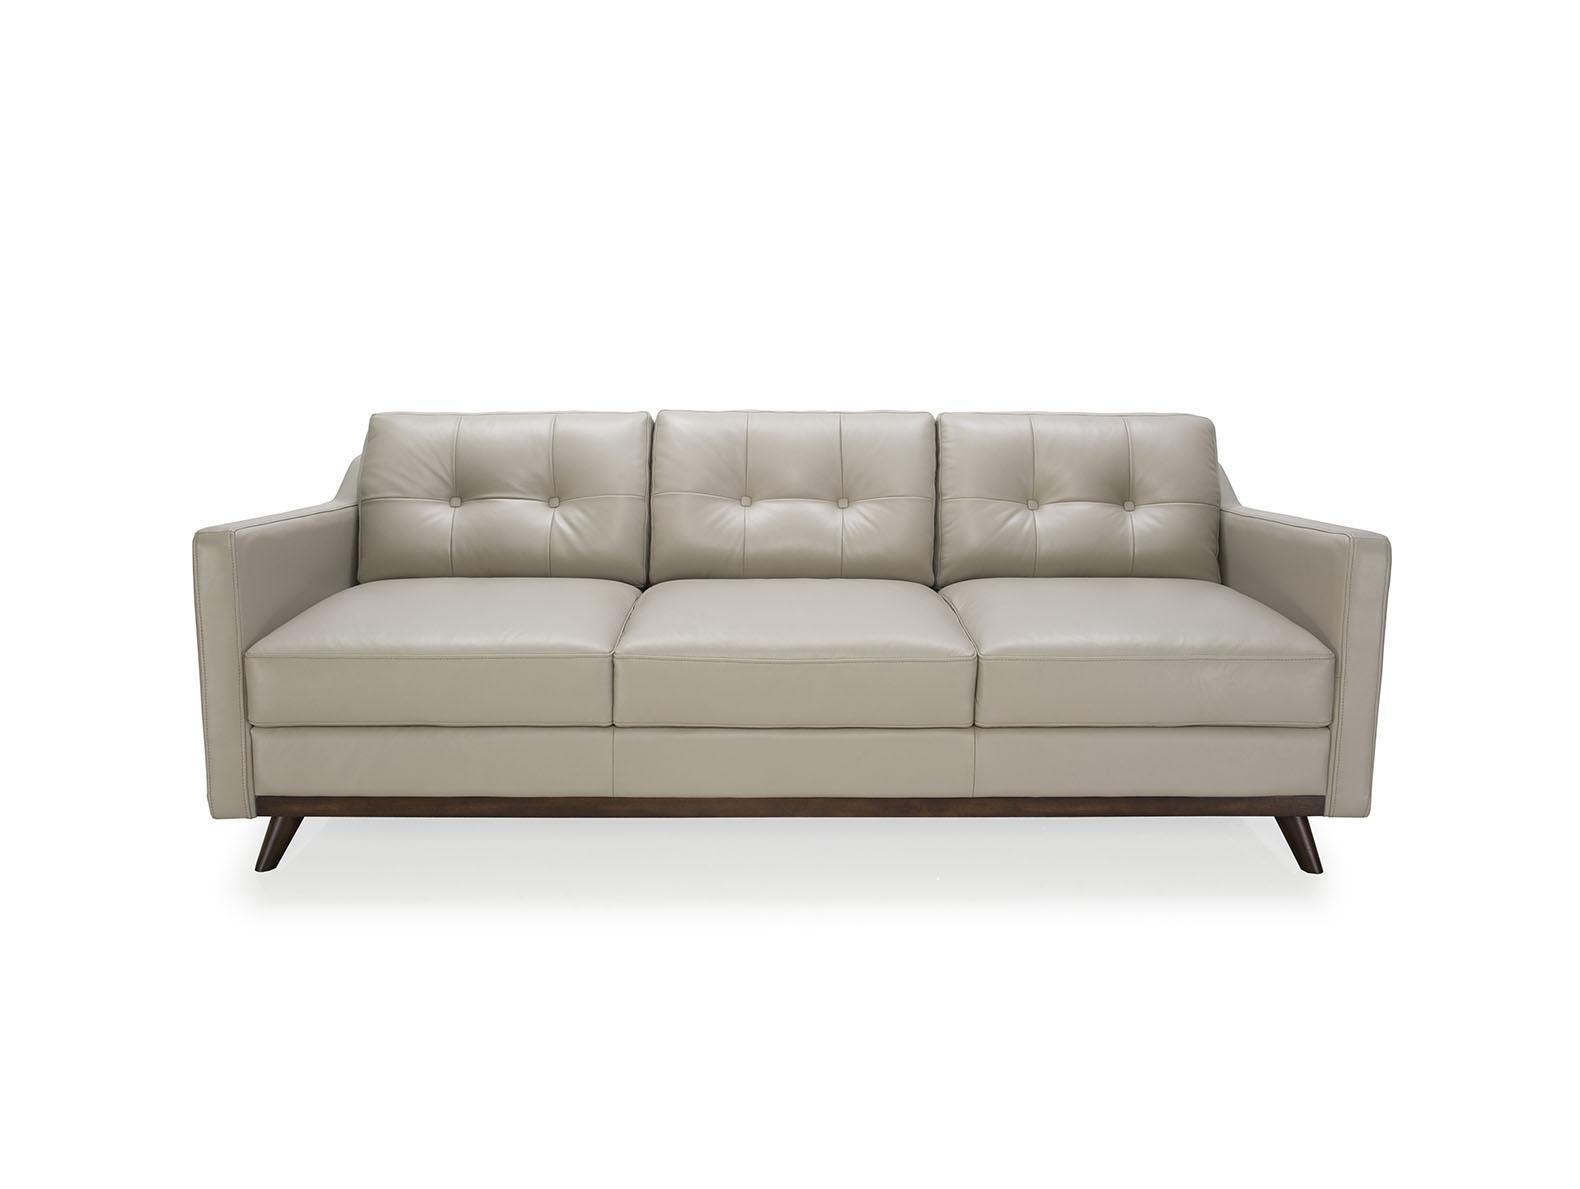 Modern Leather Furniture | Modern Design Sofas Intended For Blair Leather Sofas (Image 12 of 20)